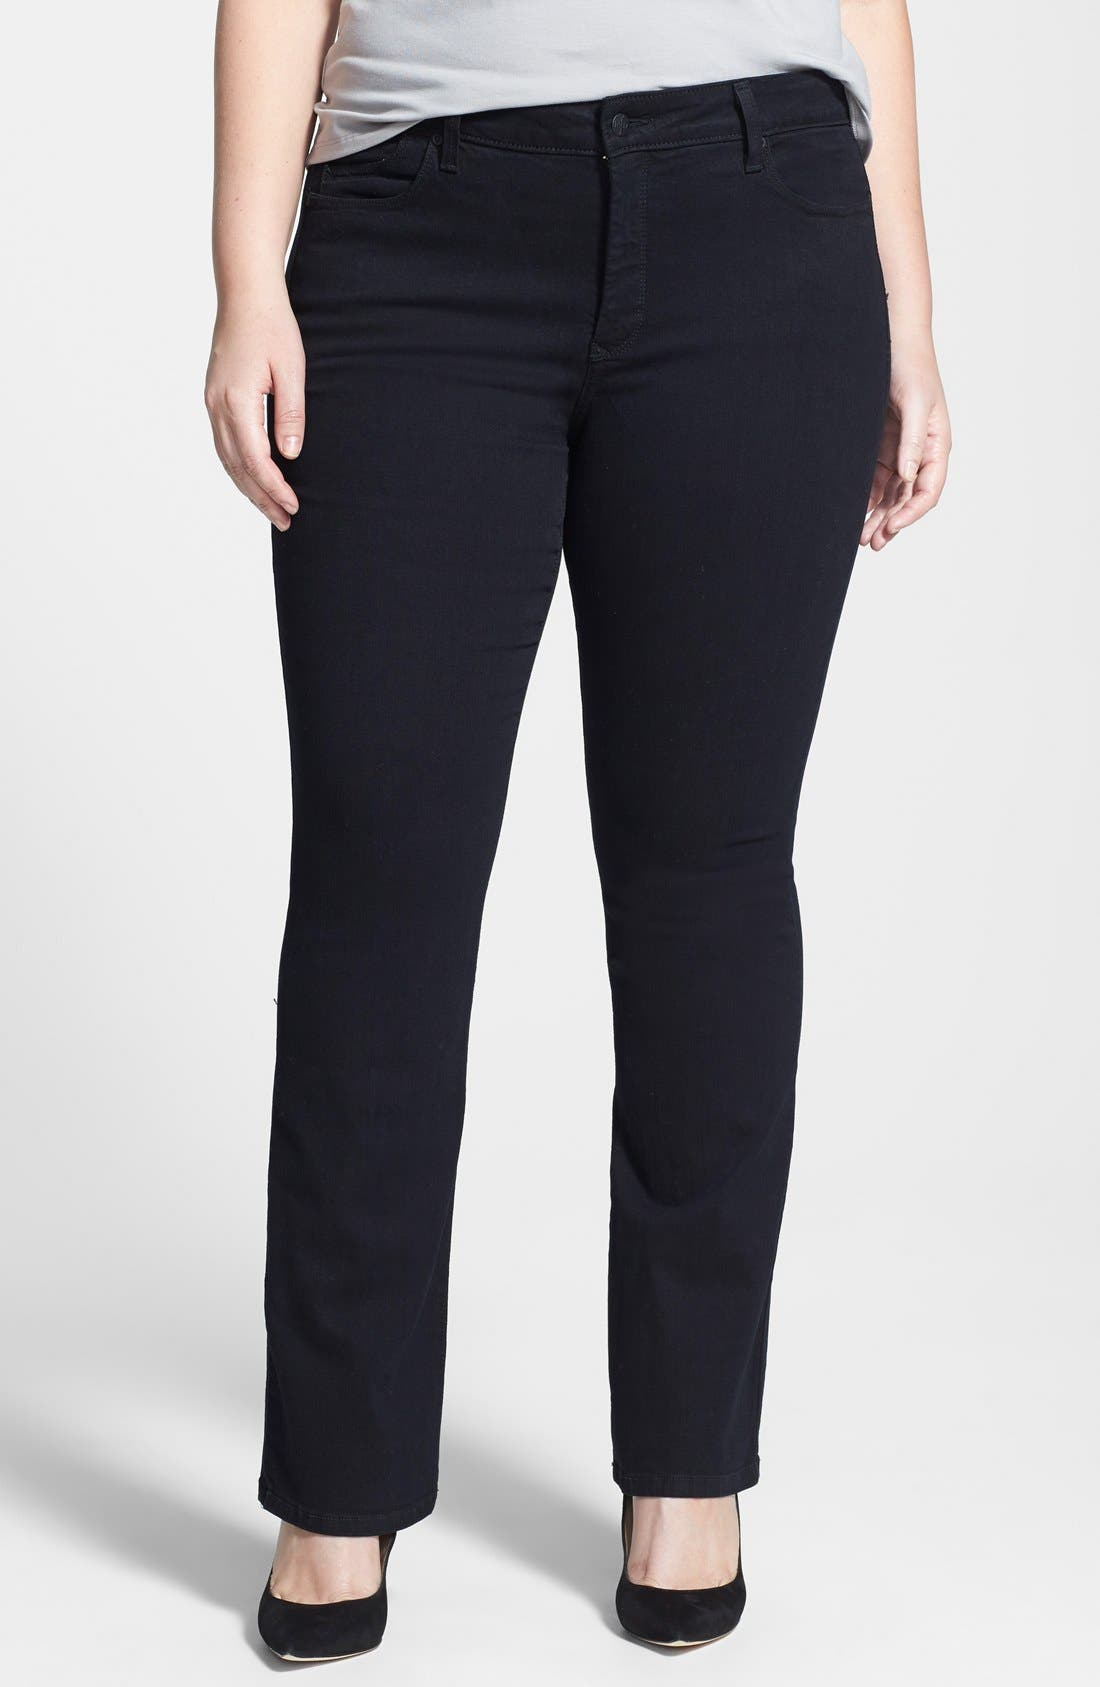 Main Image - NYDJ 'Billie' Stretch Mini Bootcut Jeans (Plus Size)